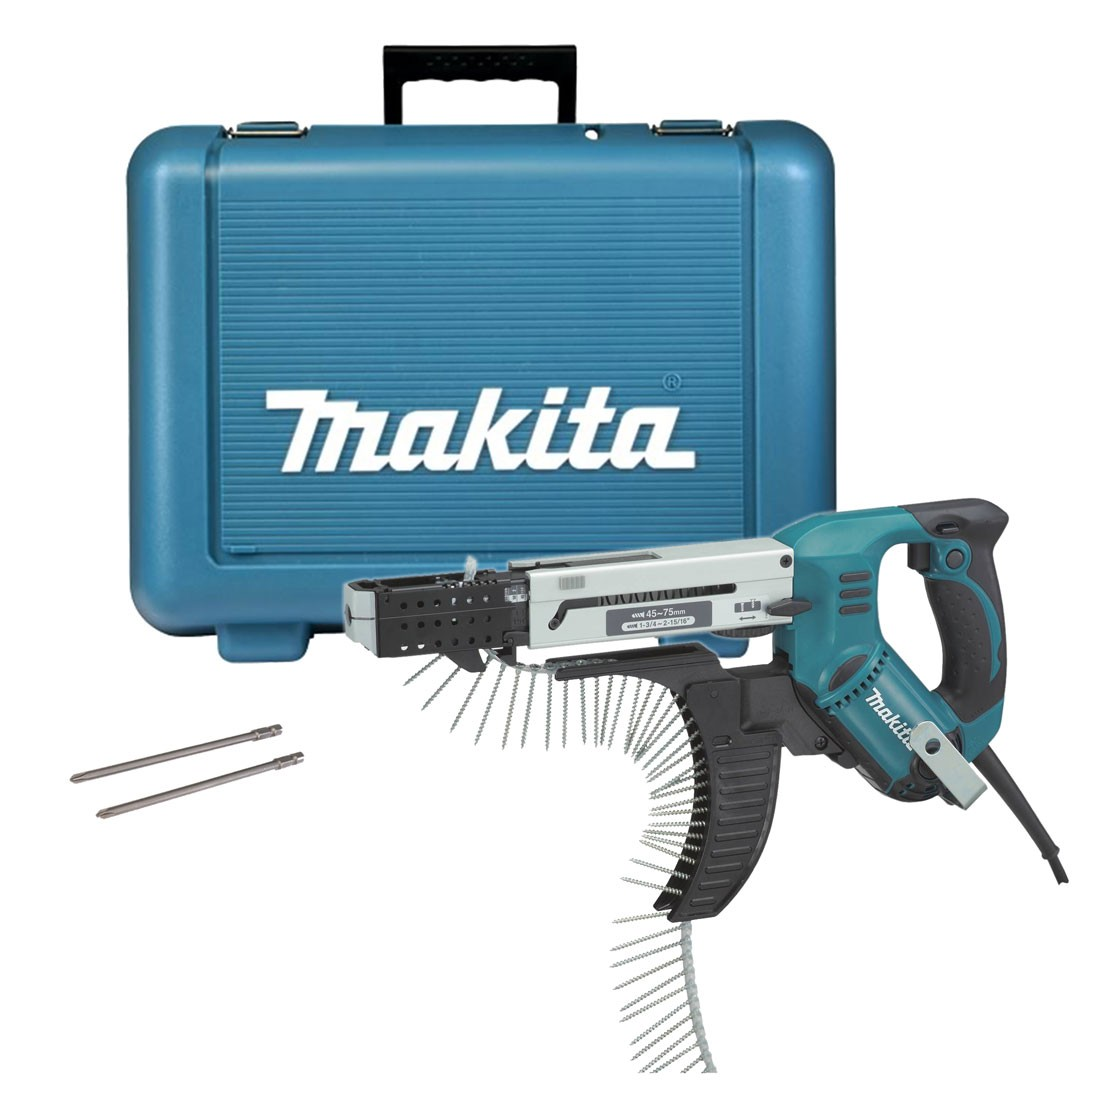 Makita 6844 Auto Feed Screwdriver in Carry Case